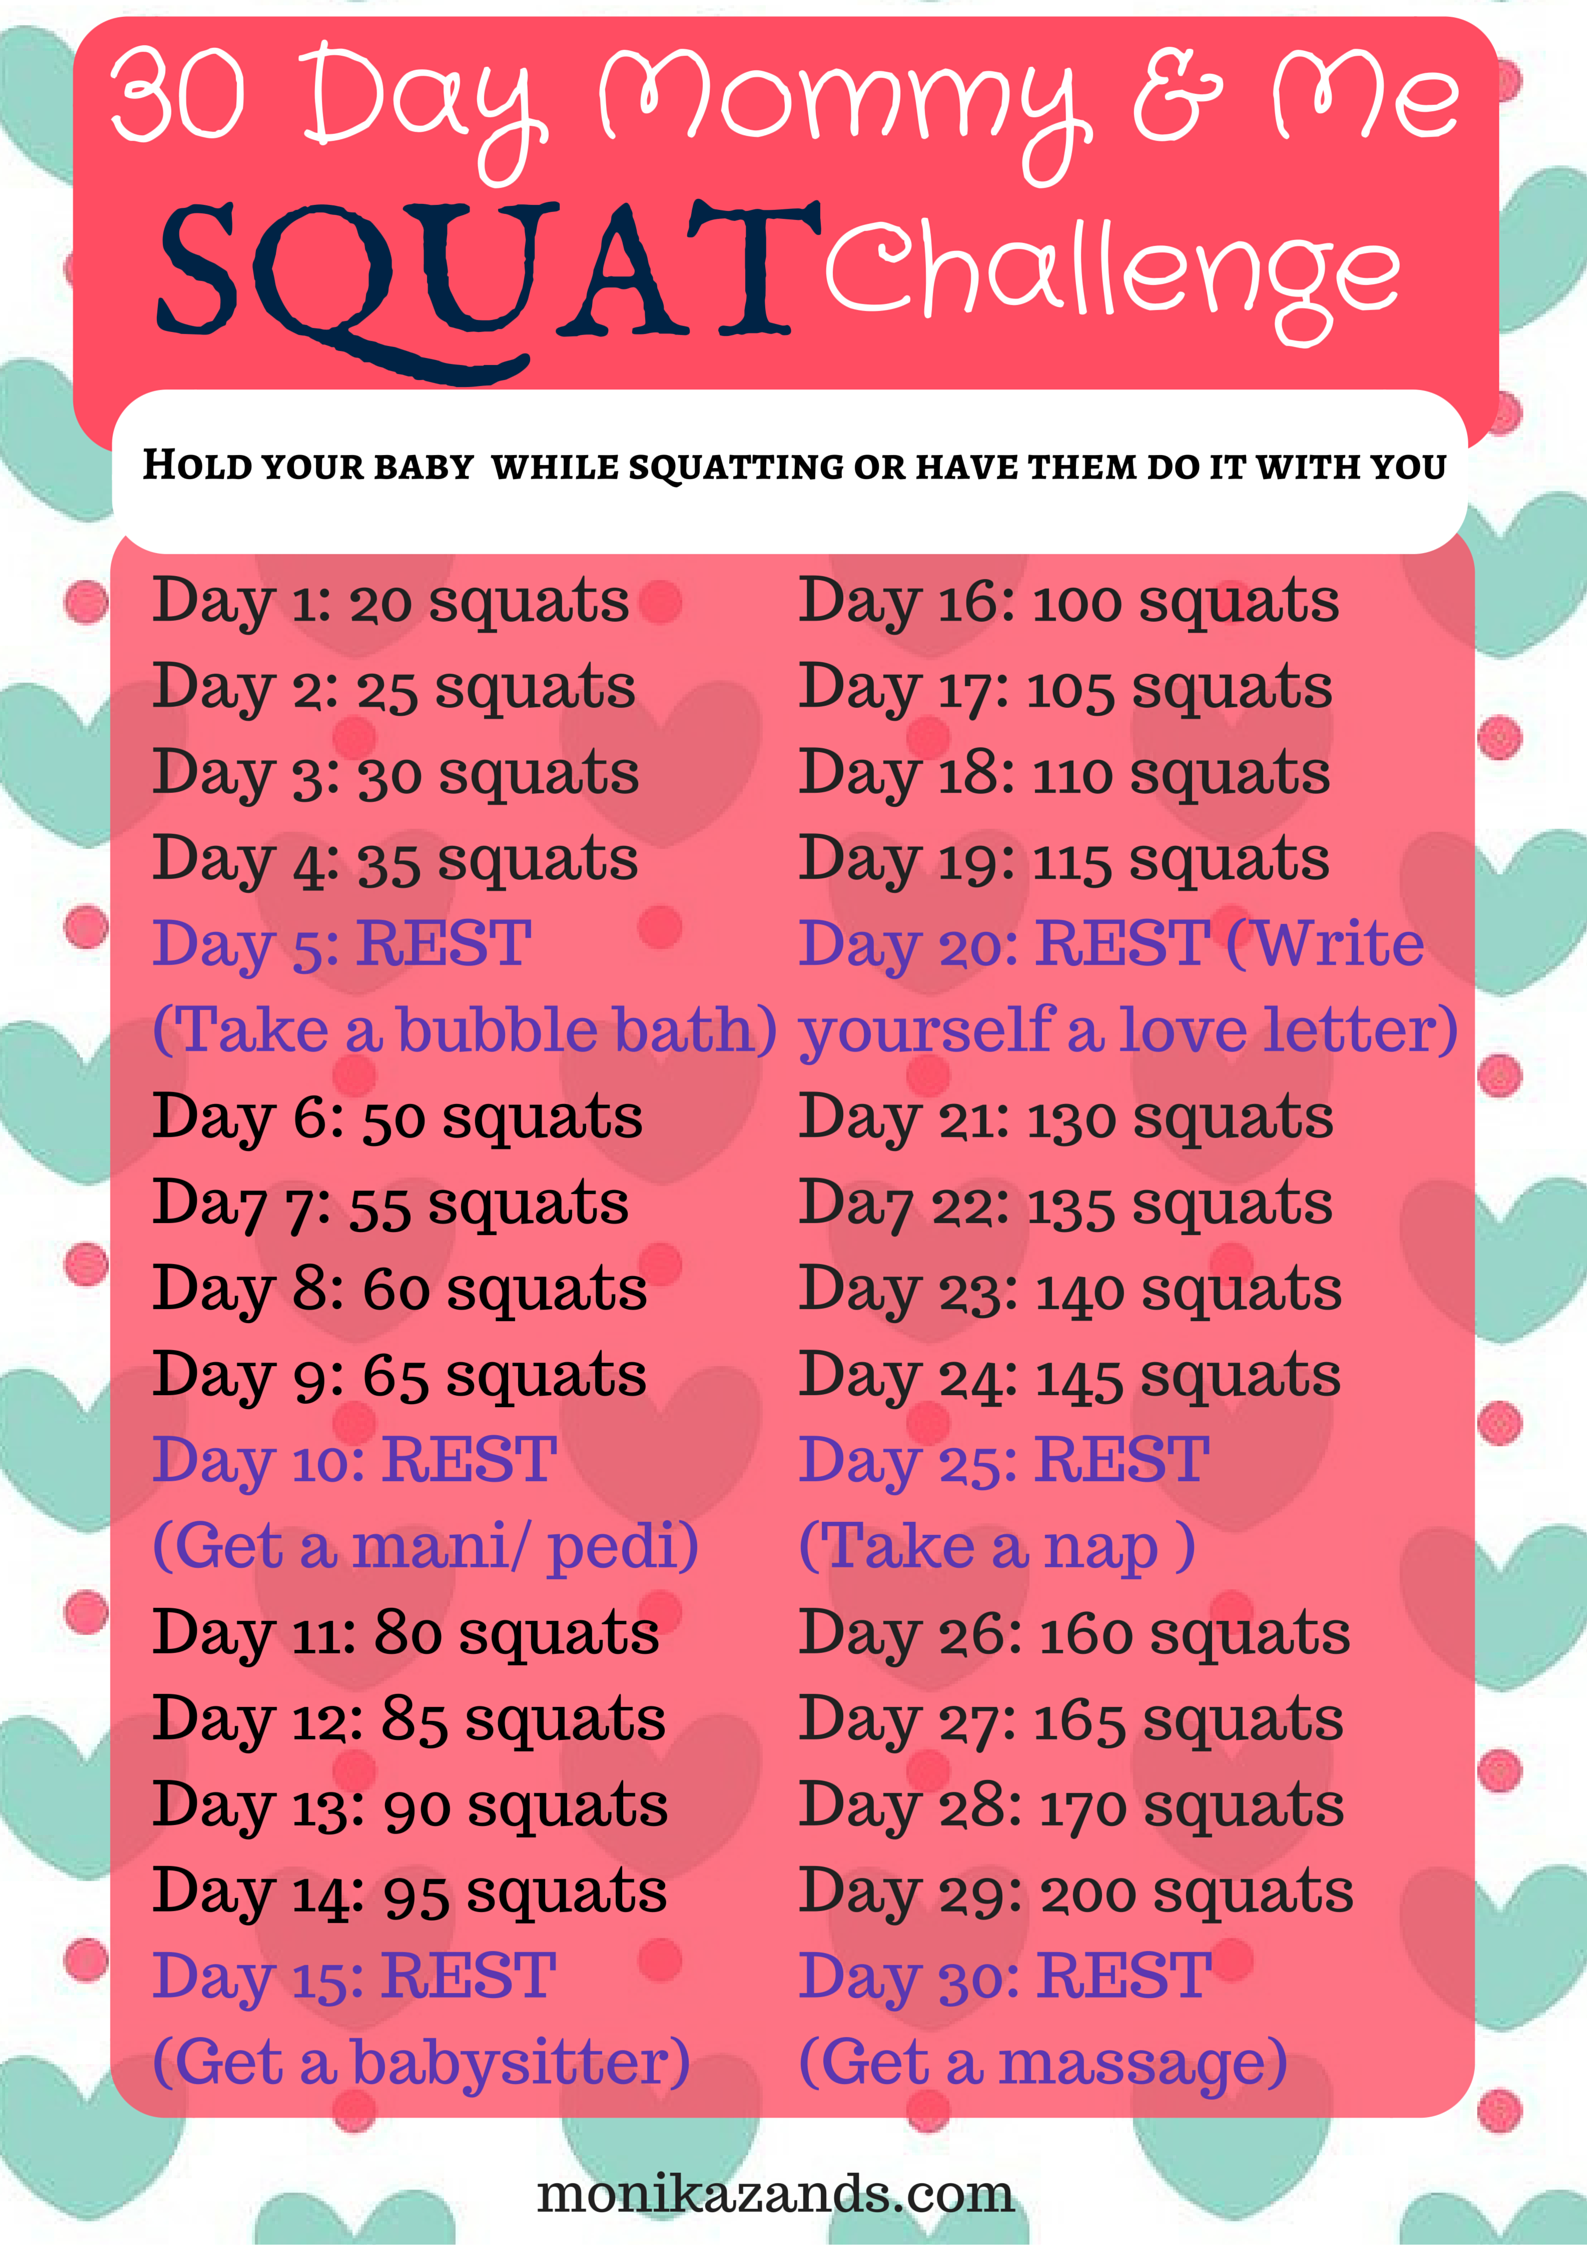 Take on the 30 Day Mommy and Me SQUAT Challenge! Hold your babies or have your kids do them with you -   24 fitness challenge for kids